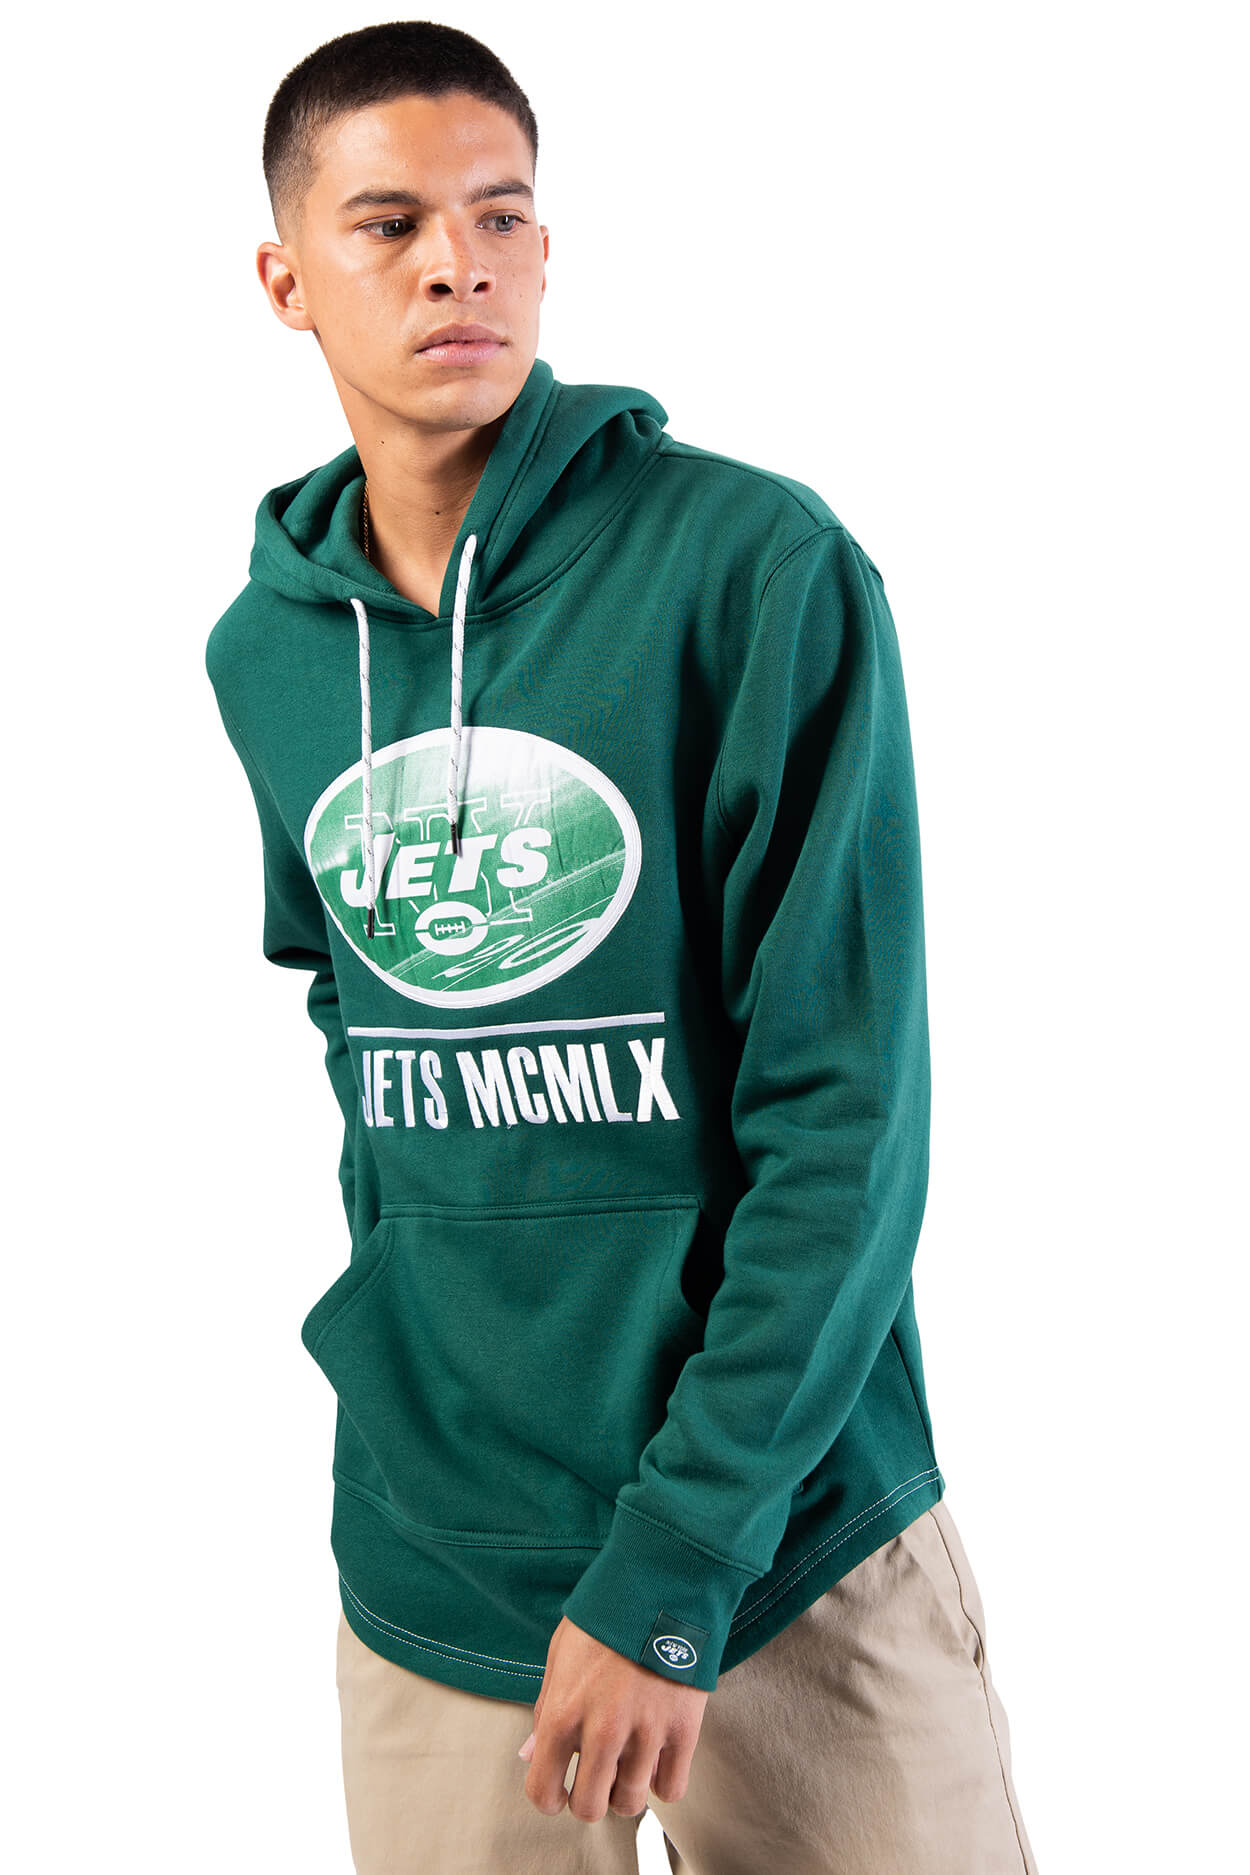 NFL New York Jets Men's Embroidered Hoodie|New York Jets